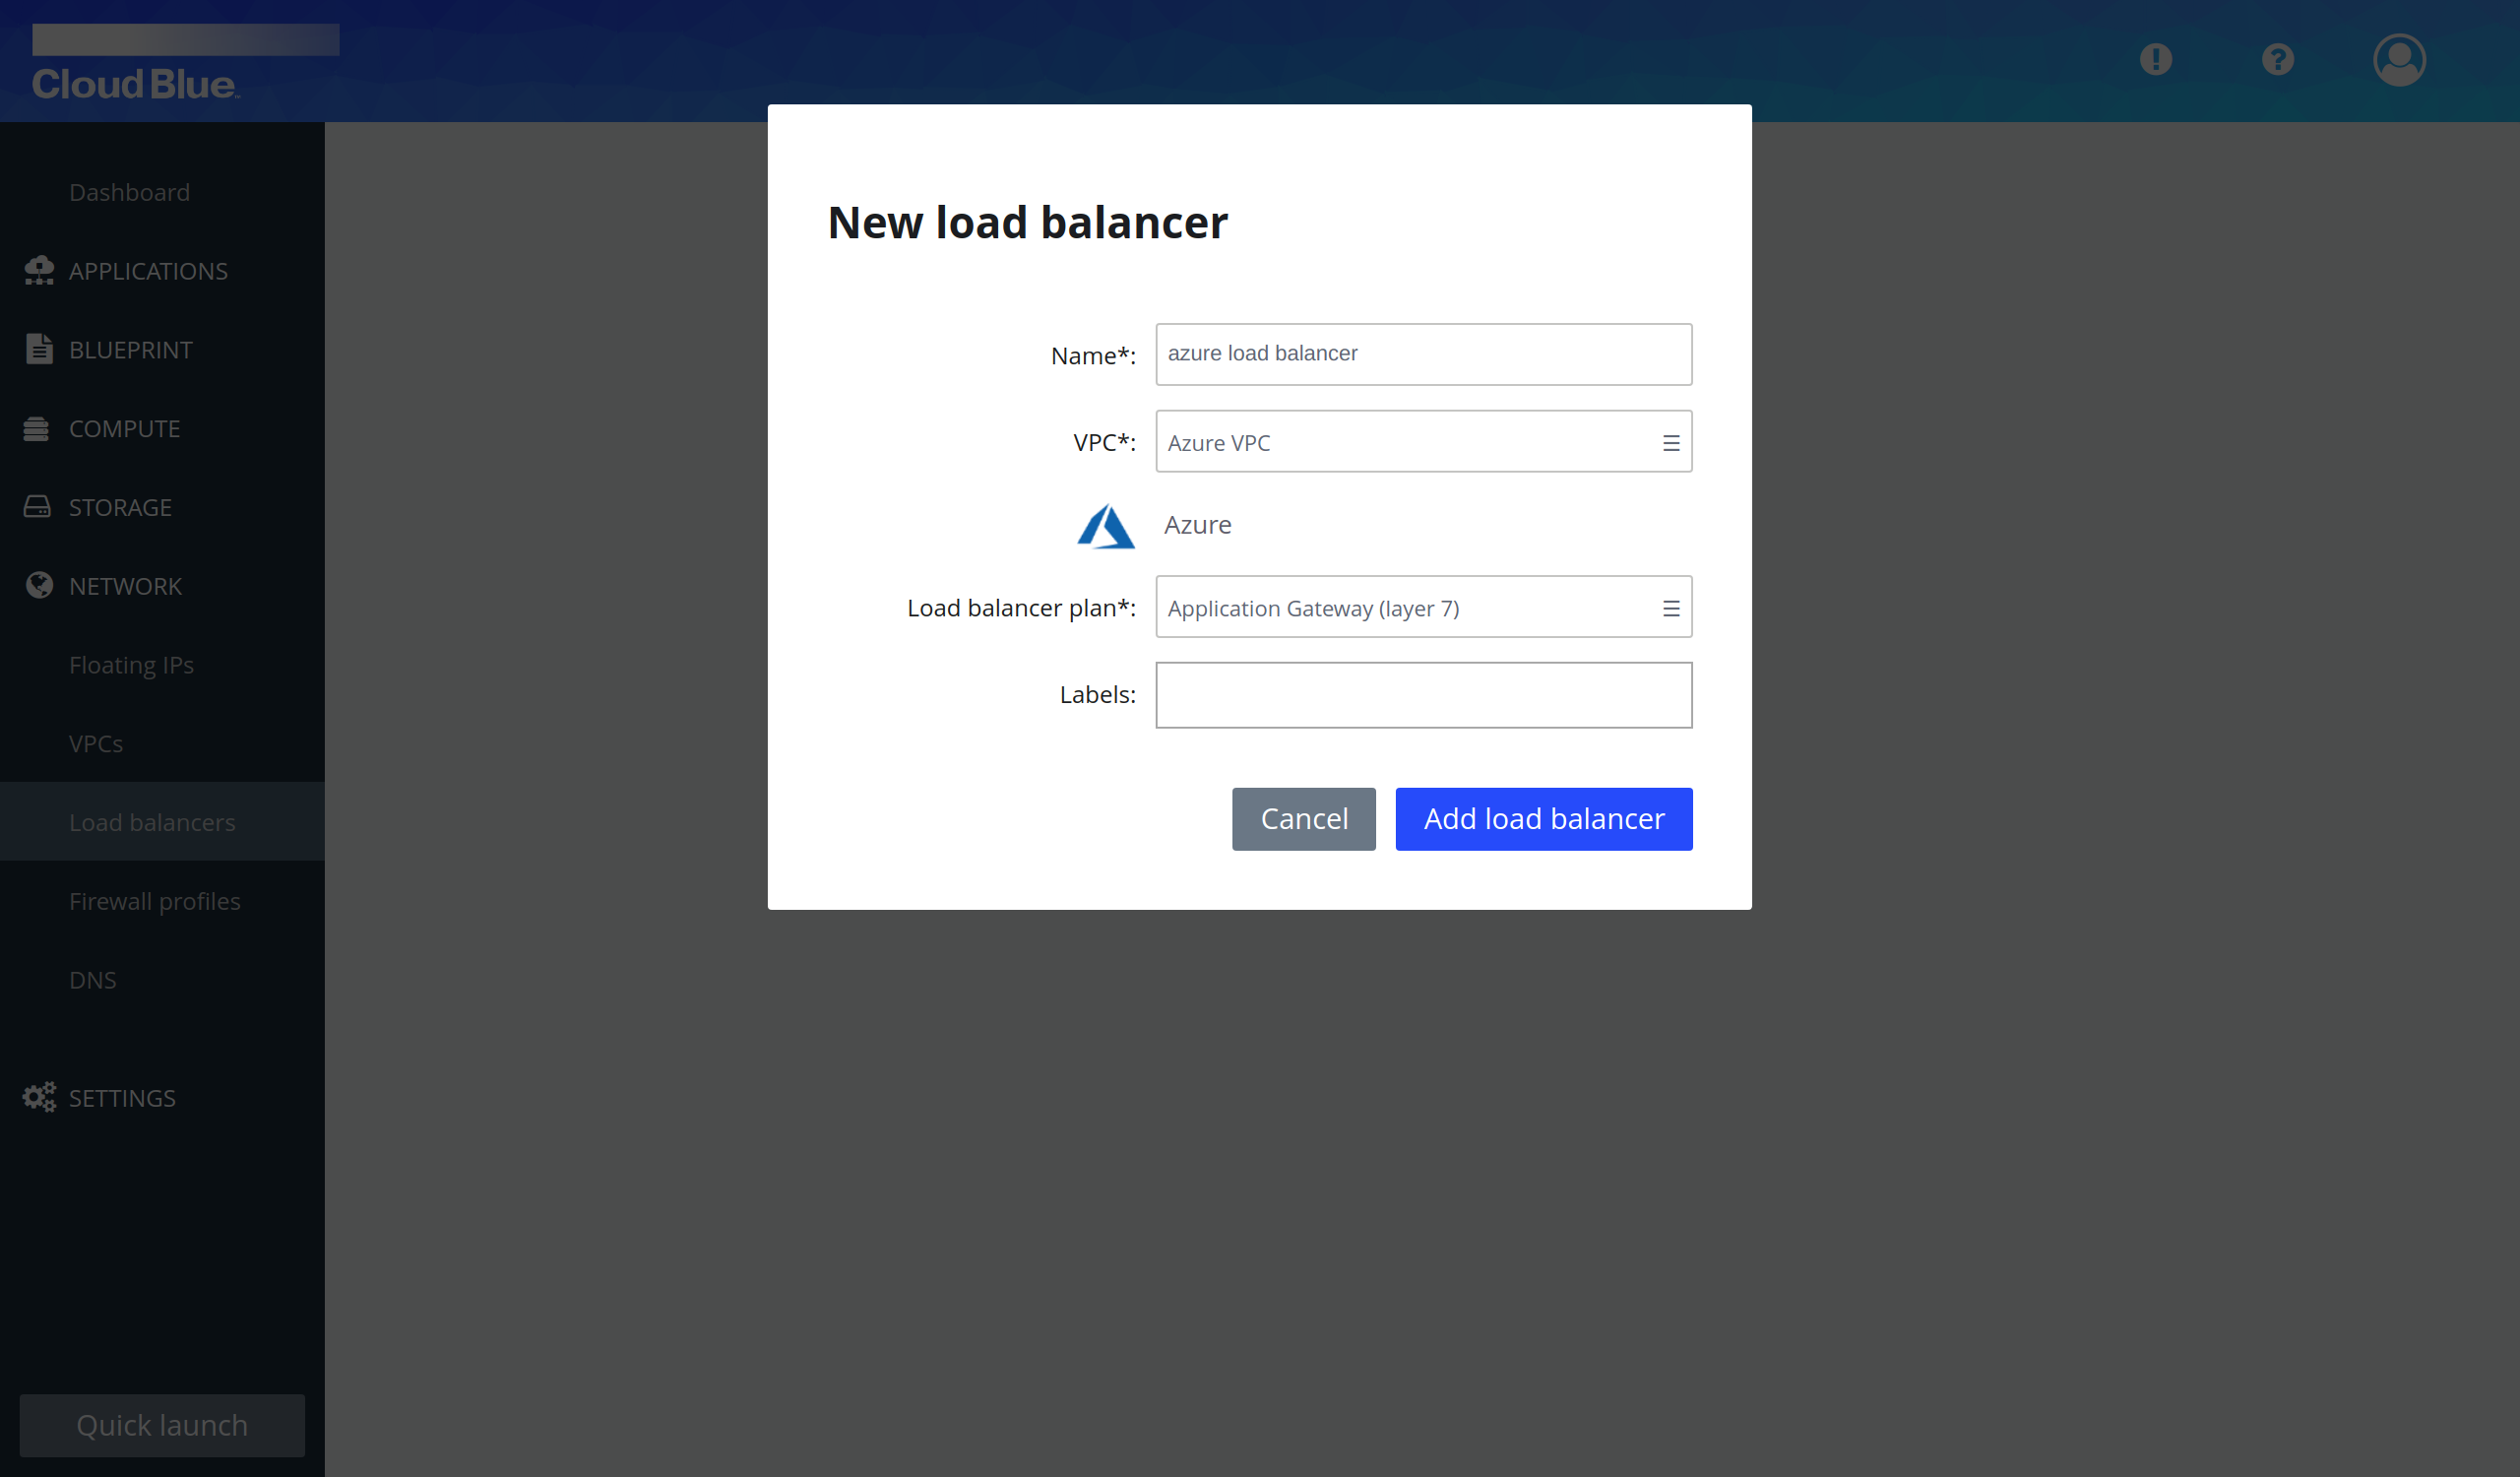 Load balancer creation pop-up